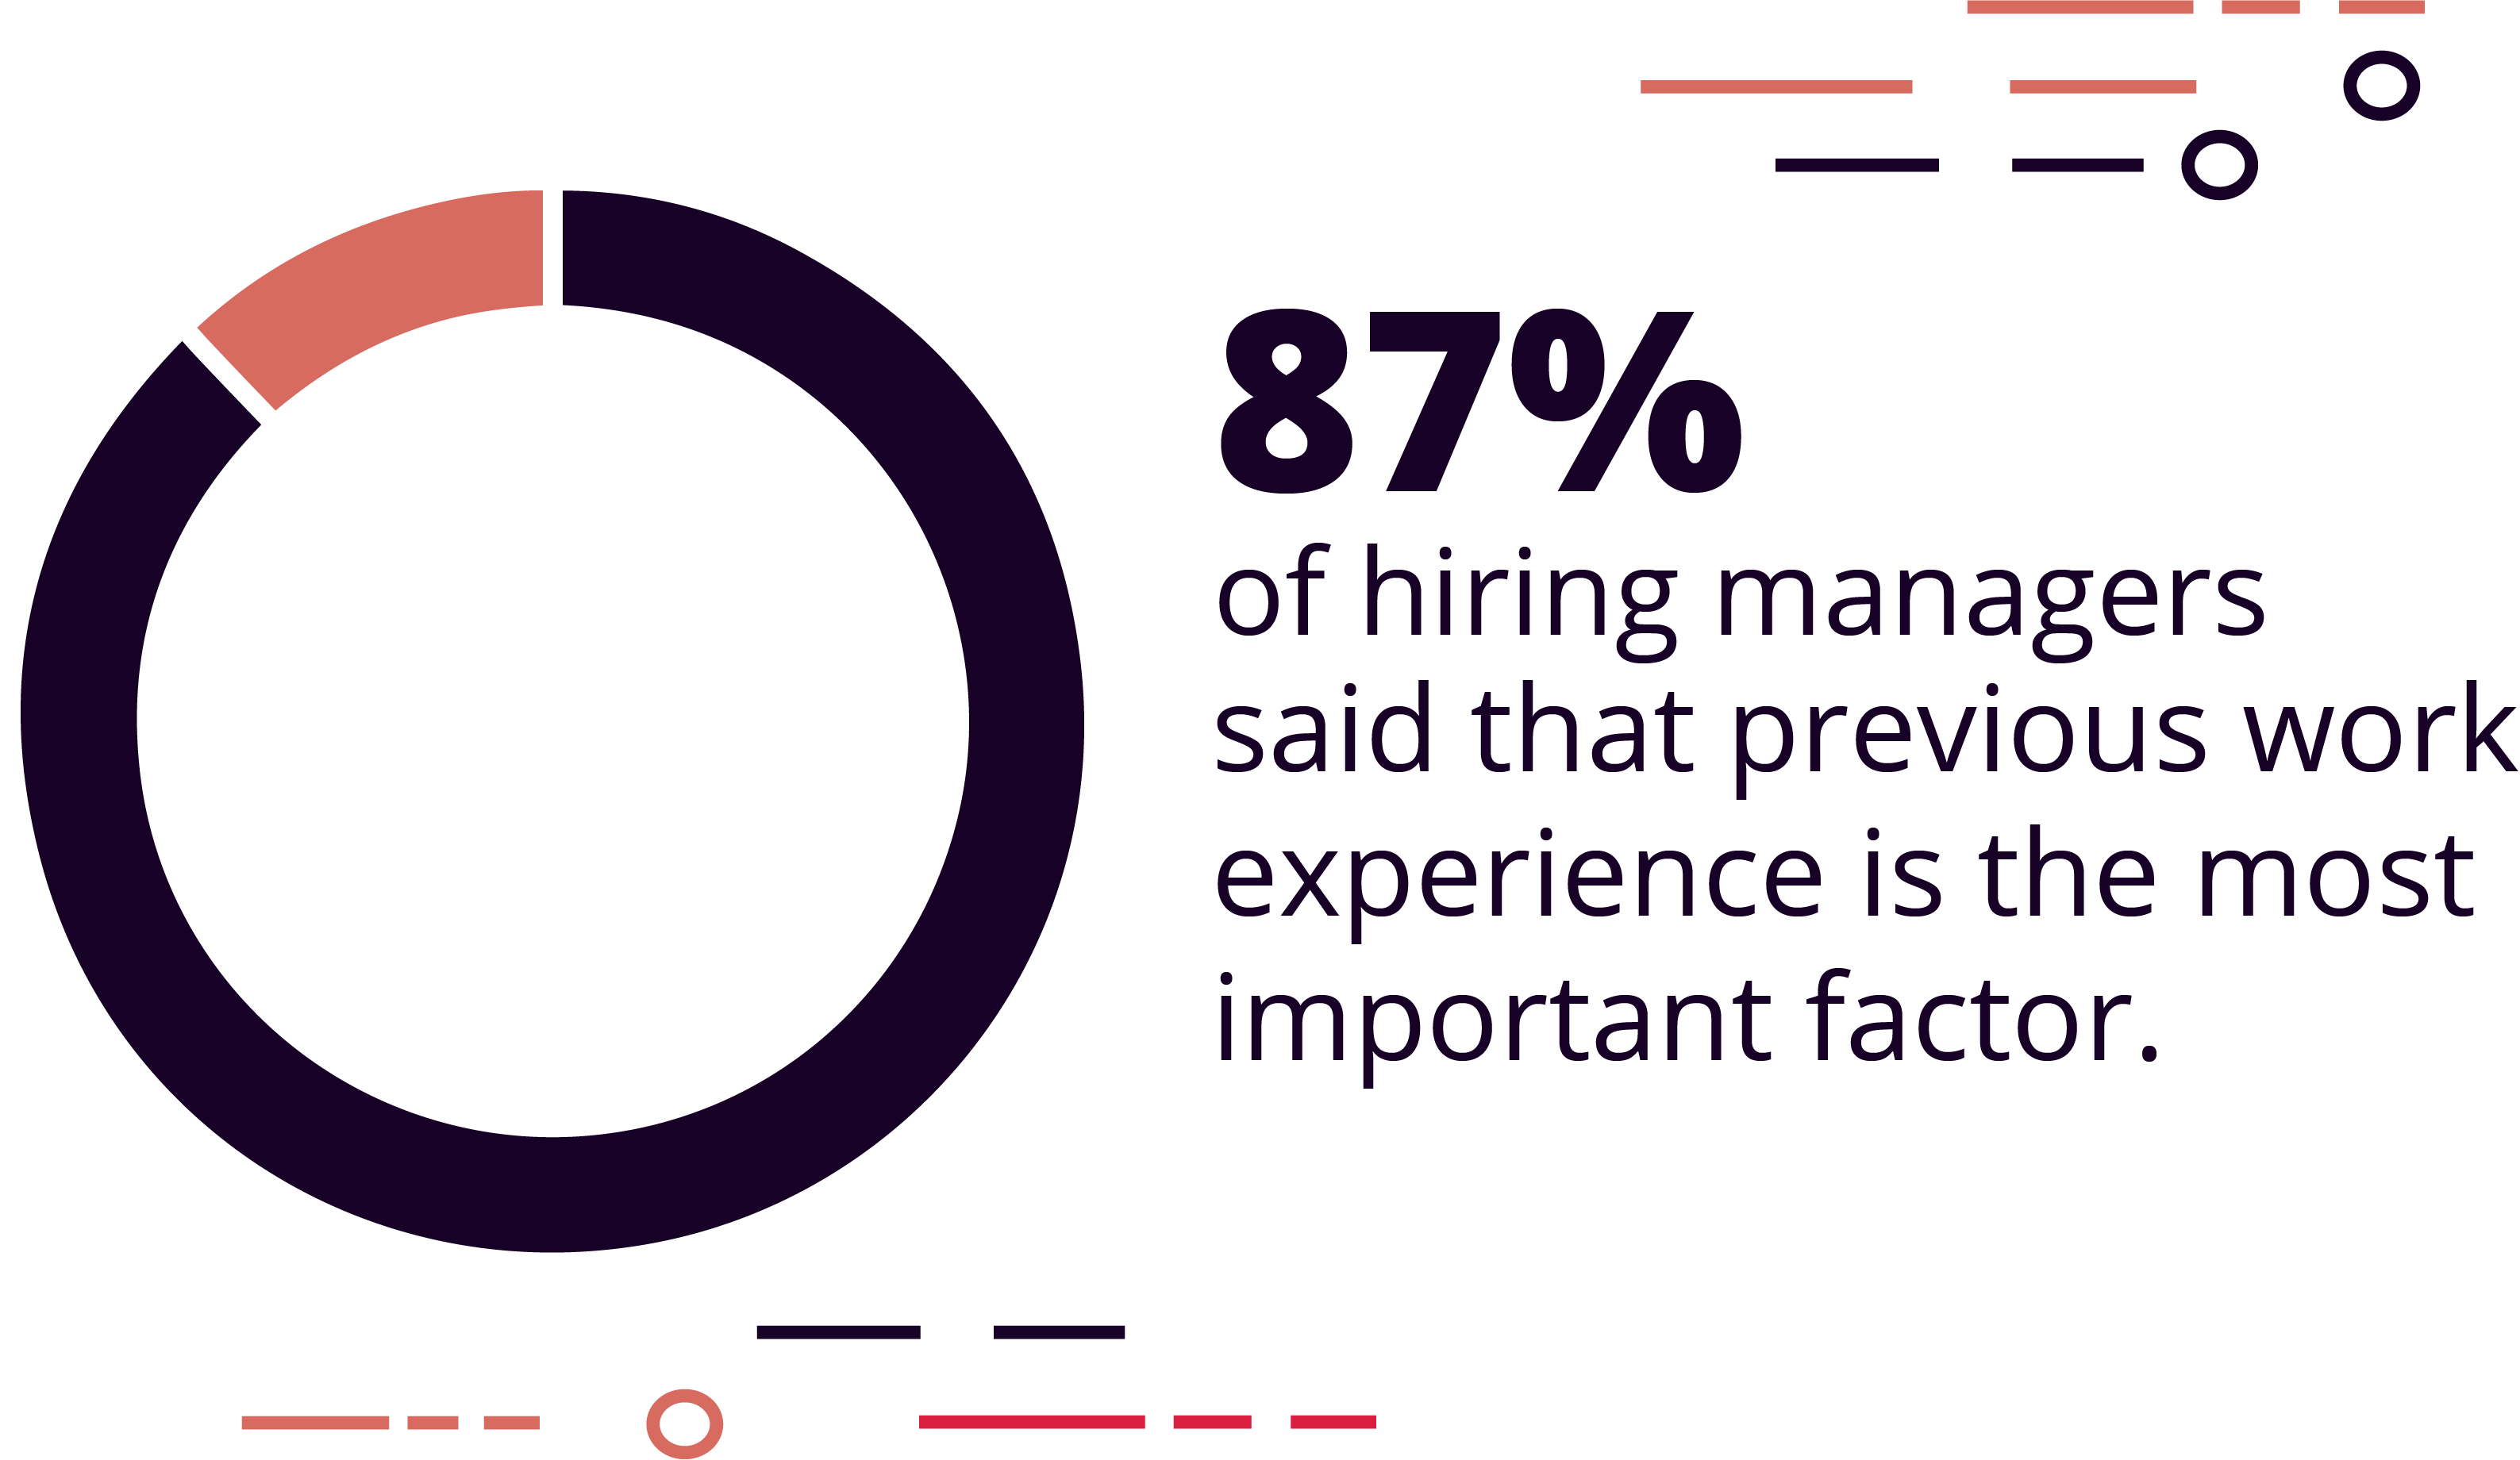 87% of hiring managers said that previous work experience is the most important factor